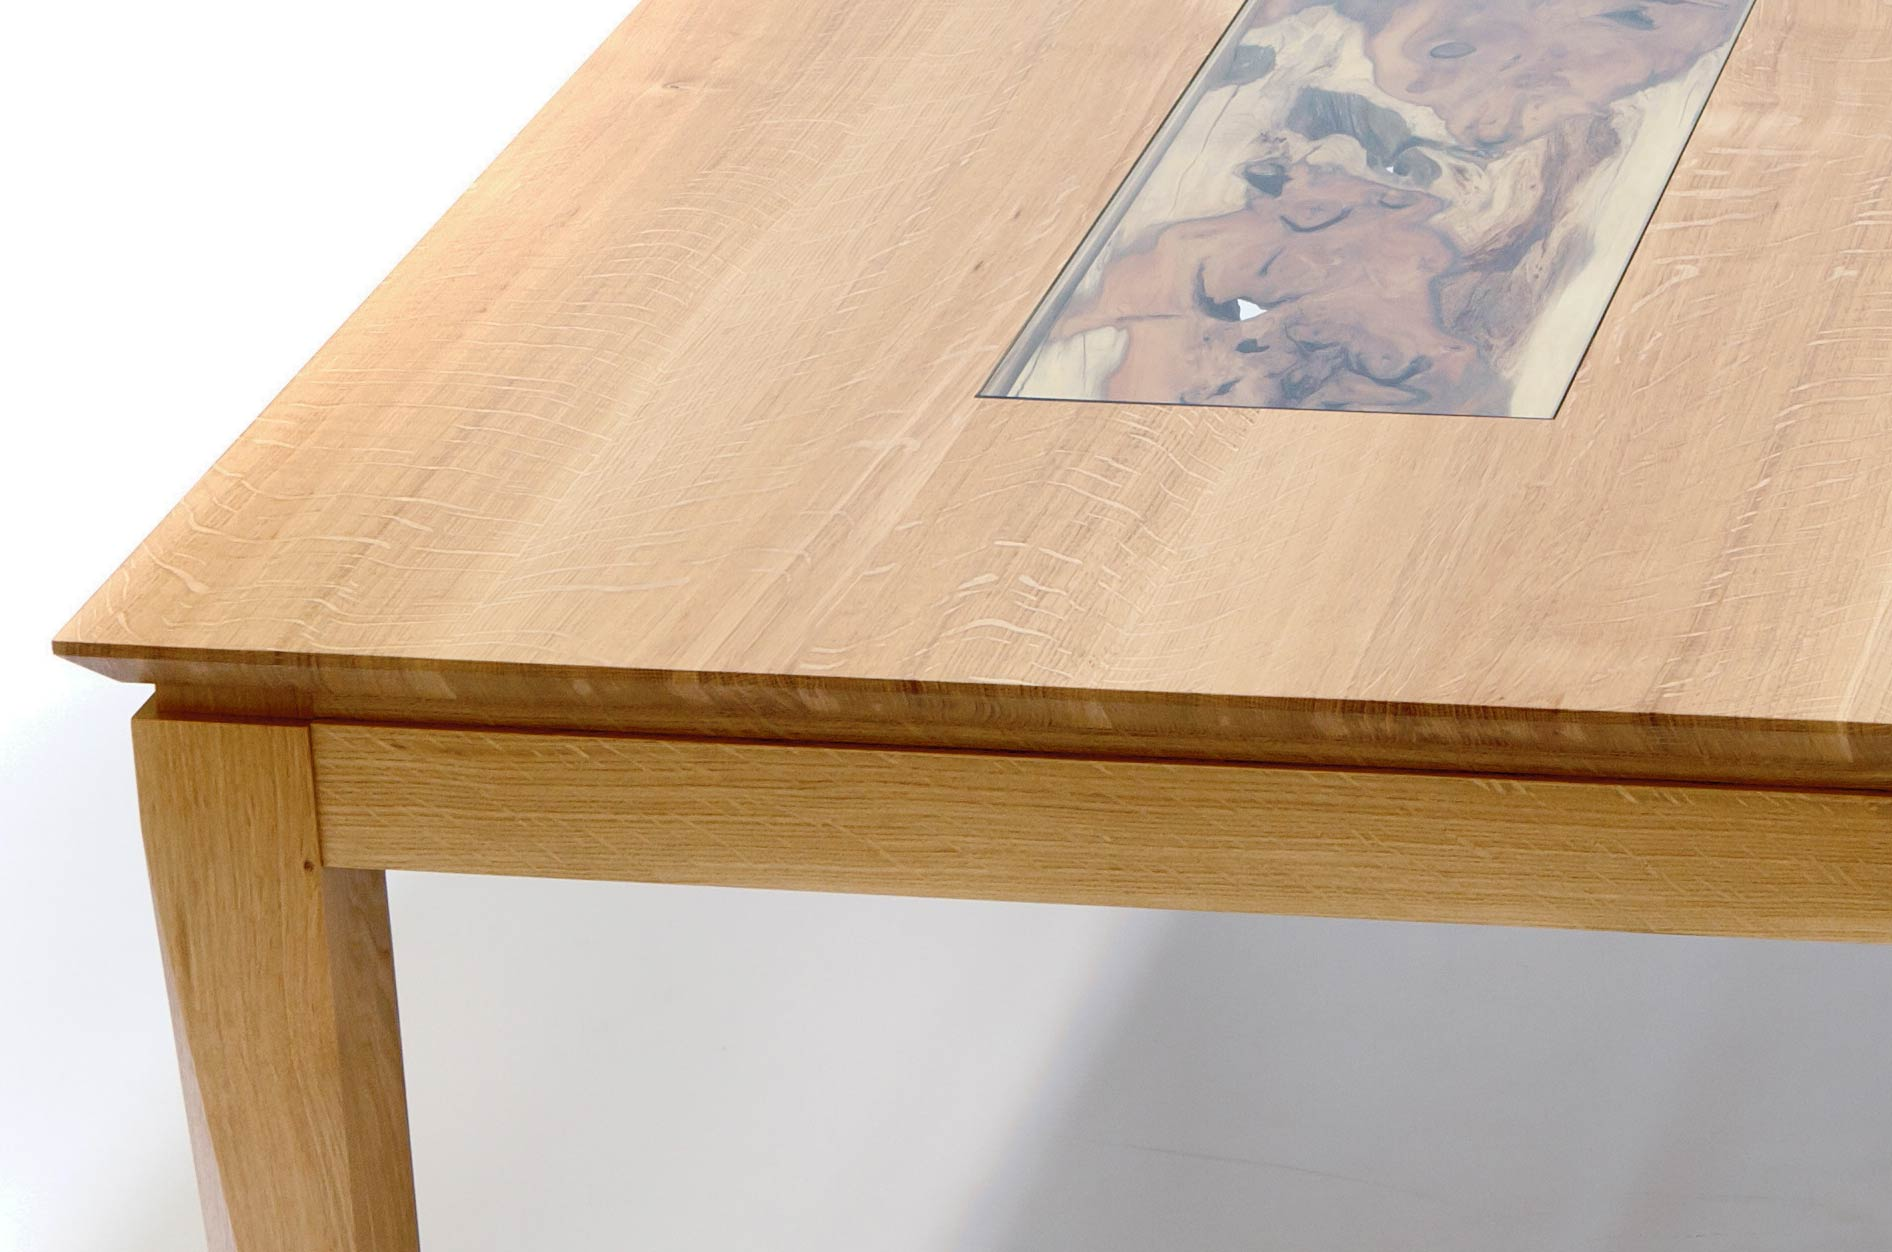 Yew Dining Room Furniture Dining Table In Oak Amp Yew Makers39 Eye